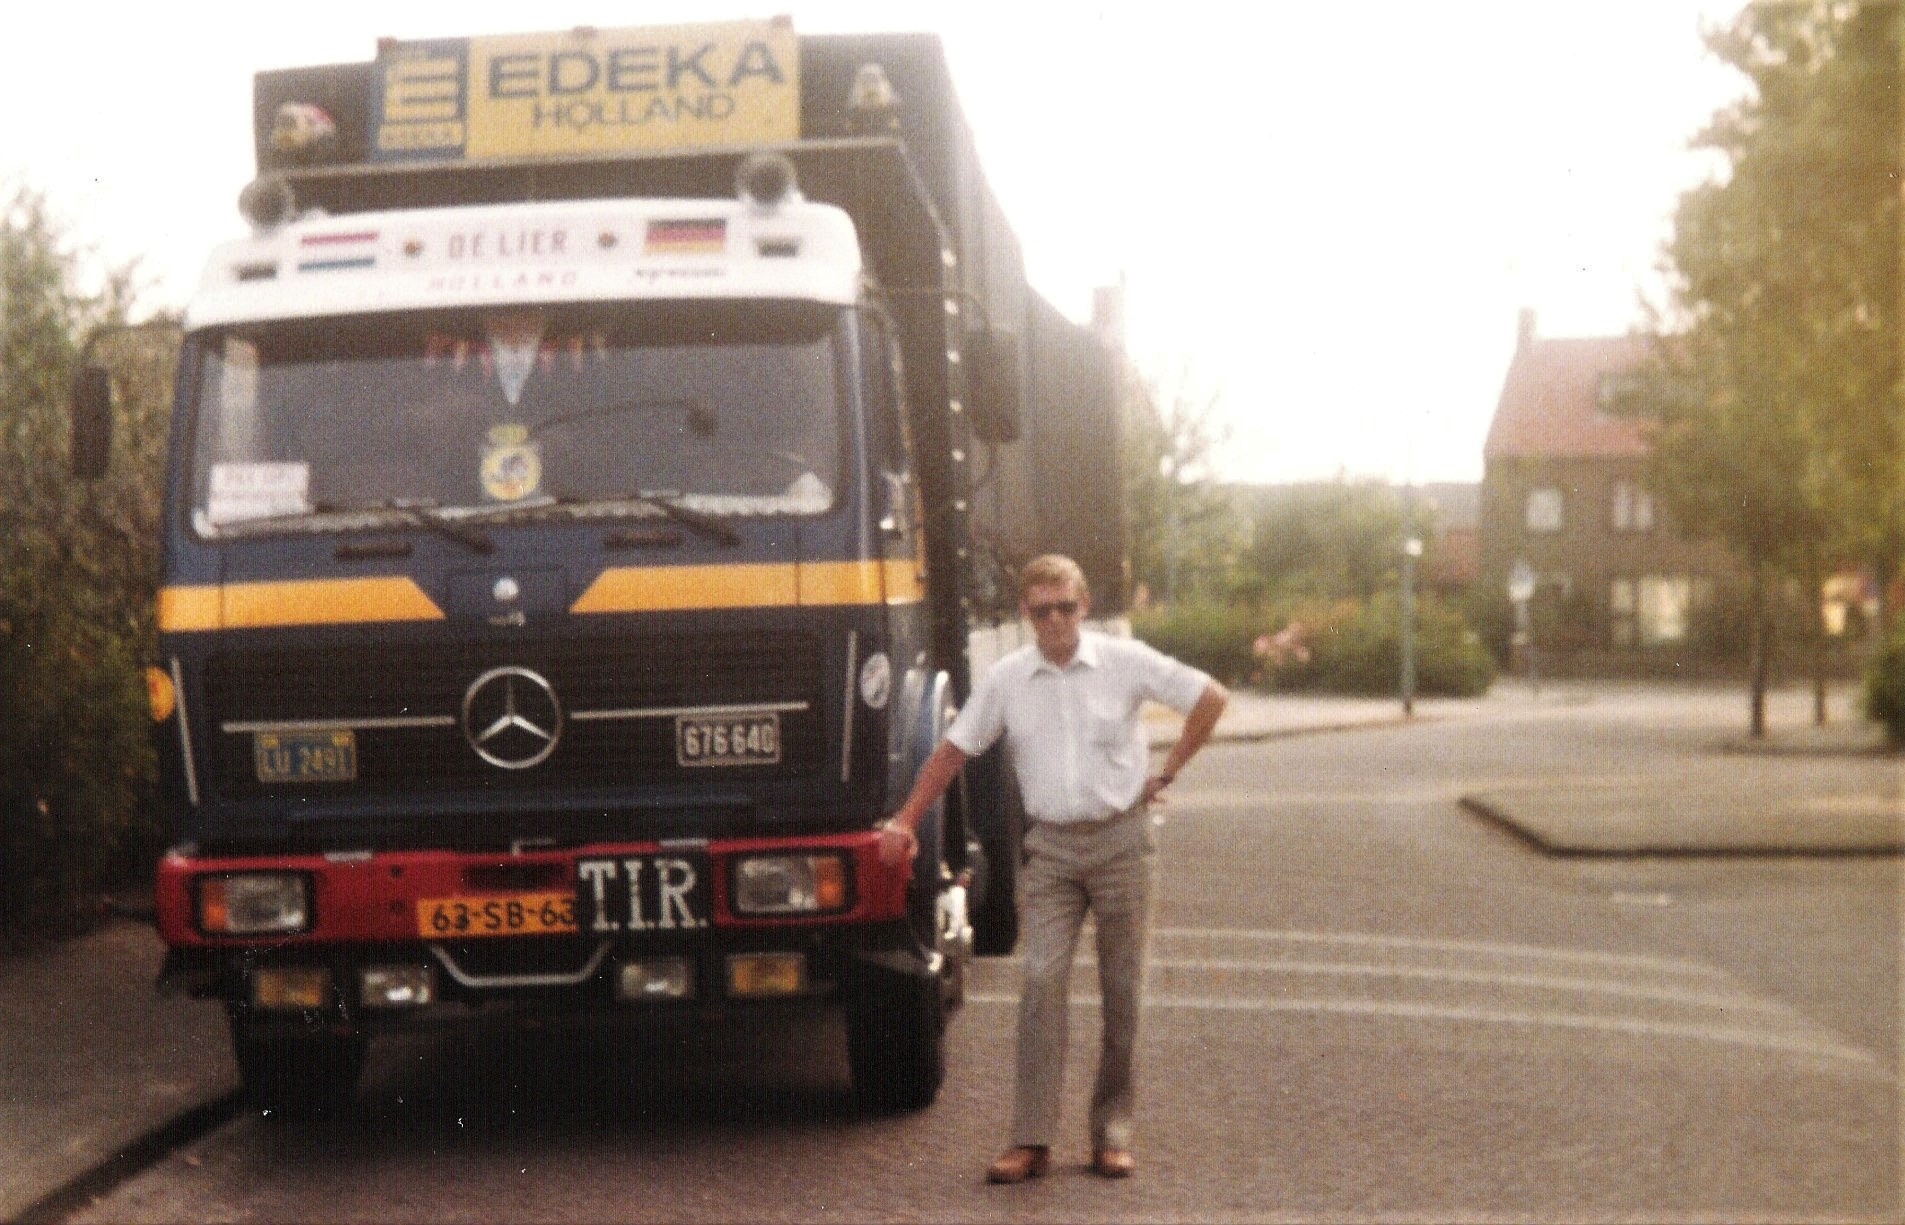 1984-63-SB-63-in-de-Beatrixstraat-de-trotse-man